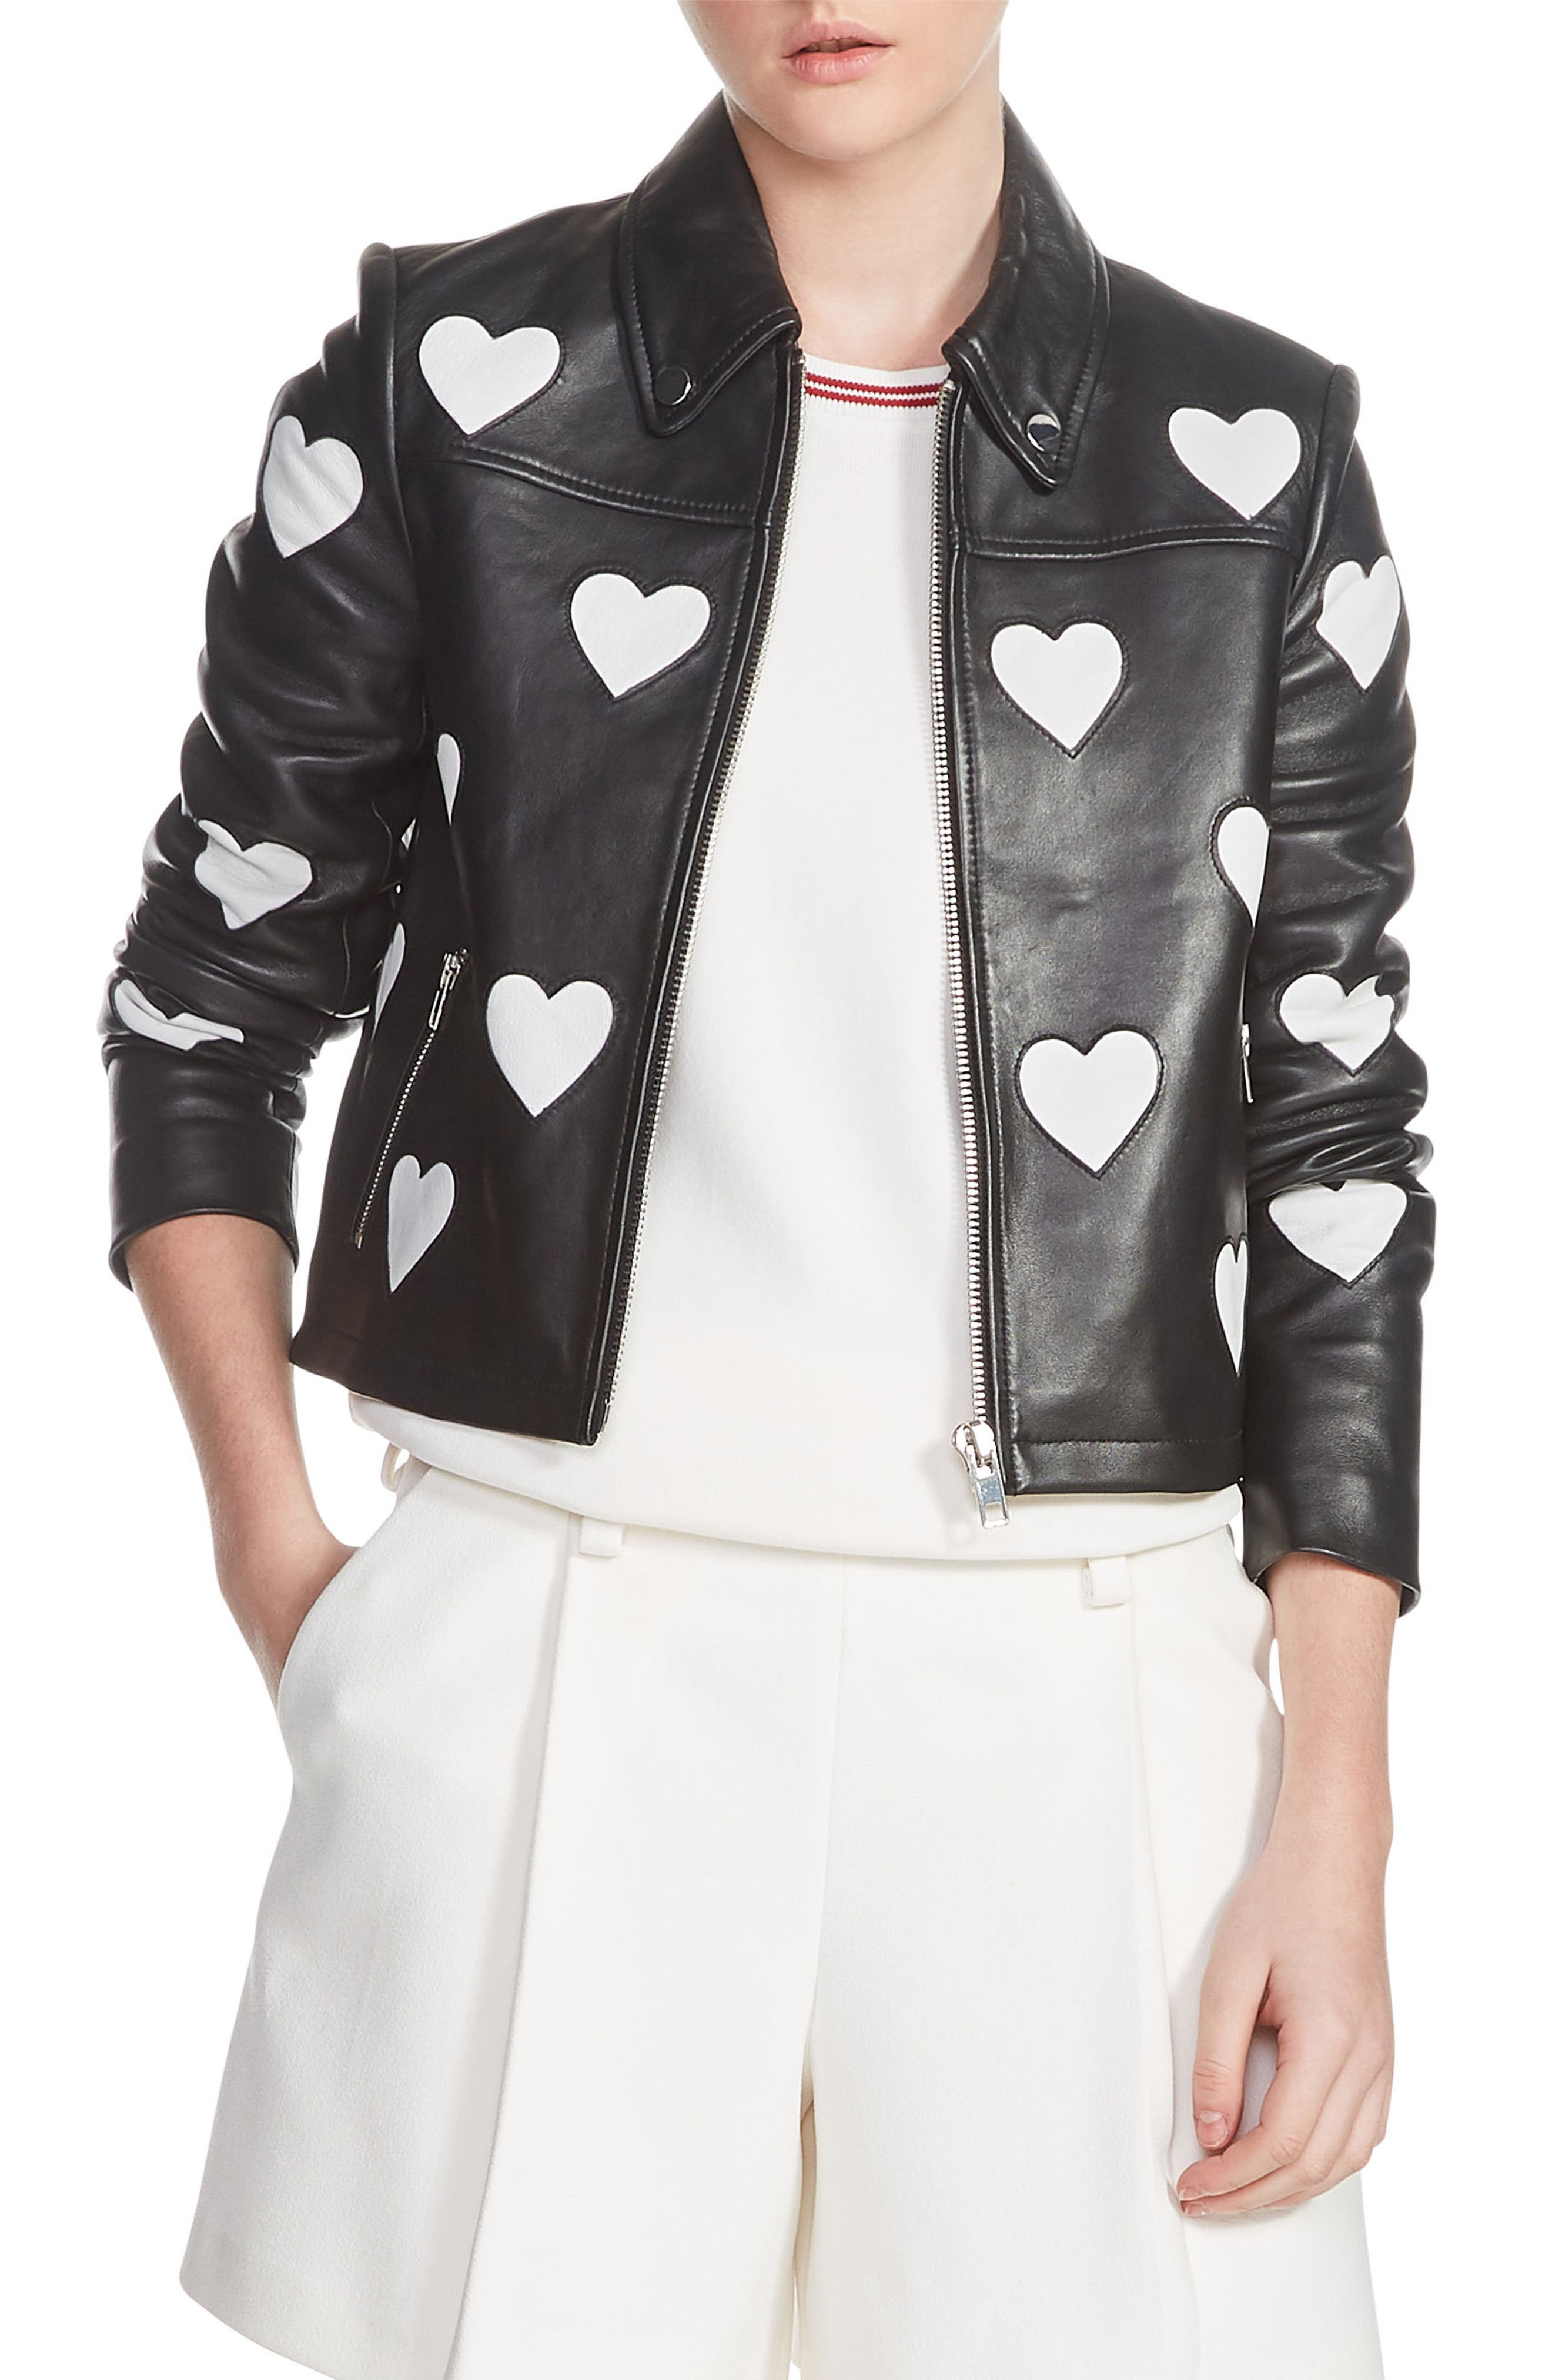 Heart Inset Leather Jacket,                             Main thumbnail 1, color,                             001